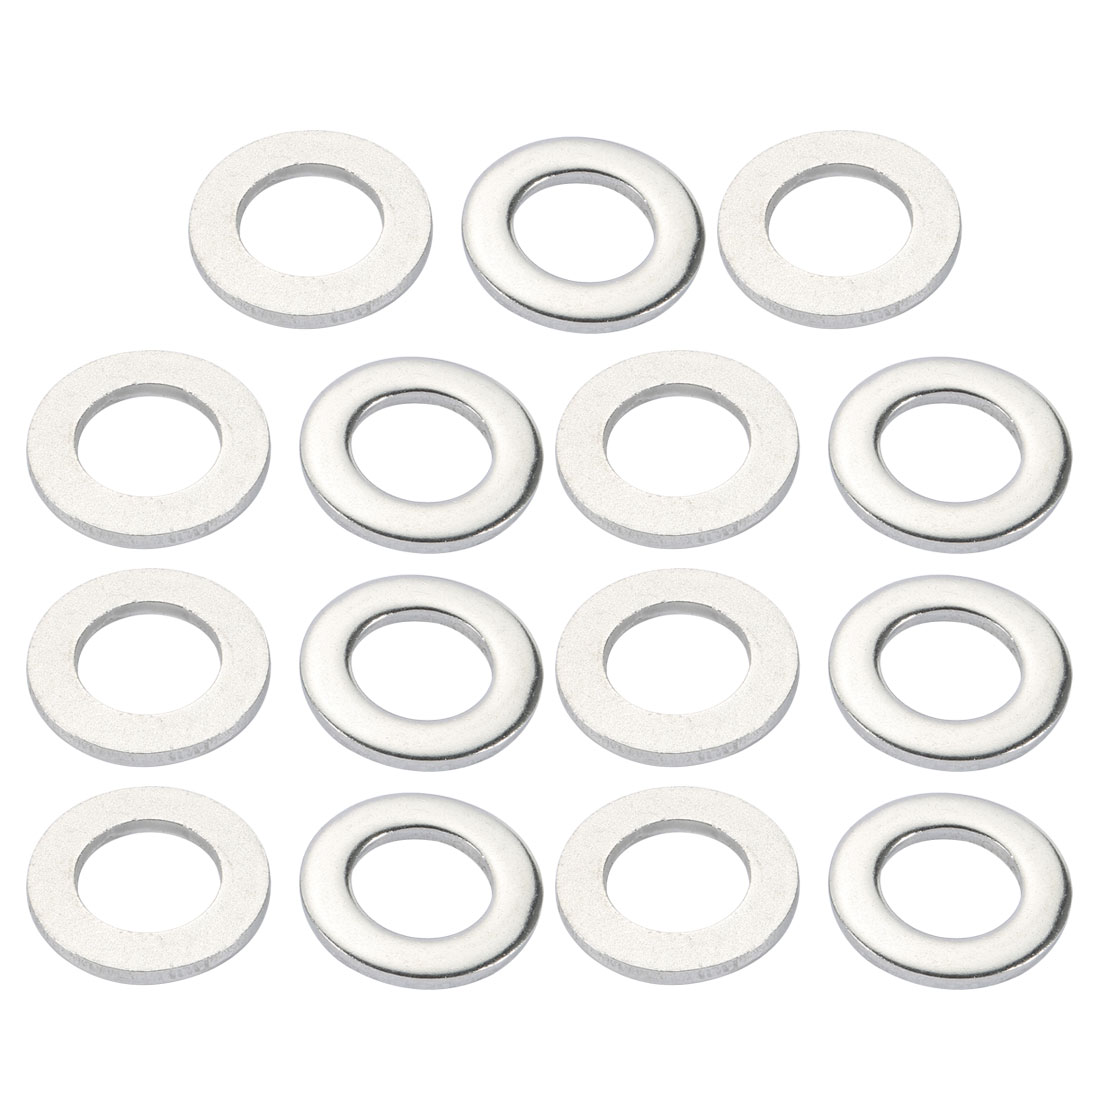 M24x44mmx4mm DIN125 316 Stainless Steel Flat Washer Silver Tone 15pcs